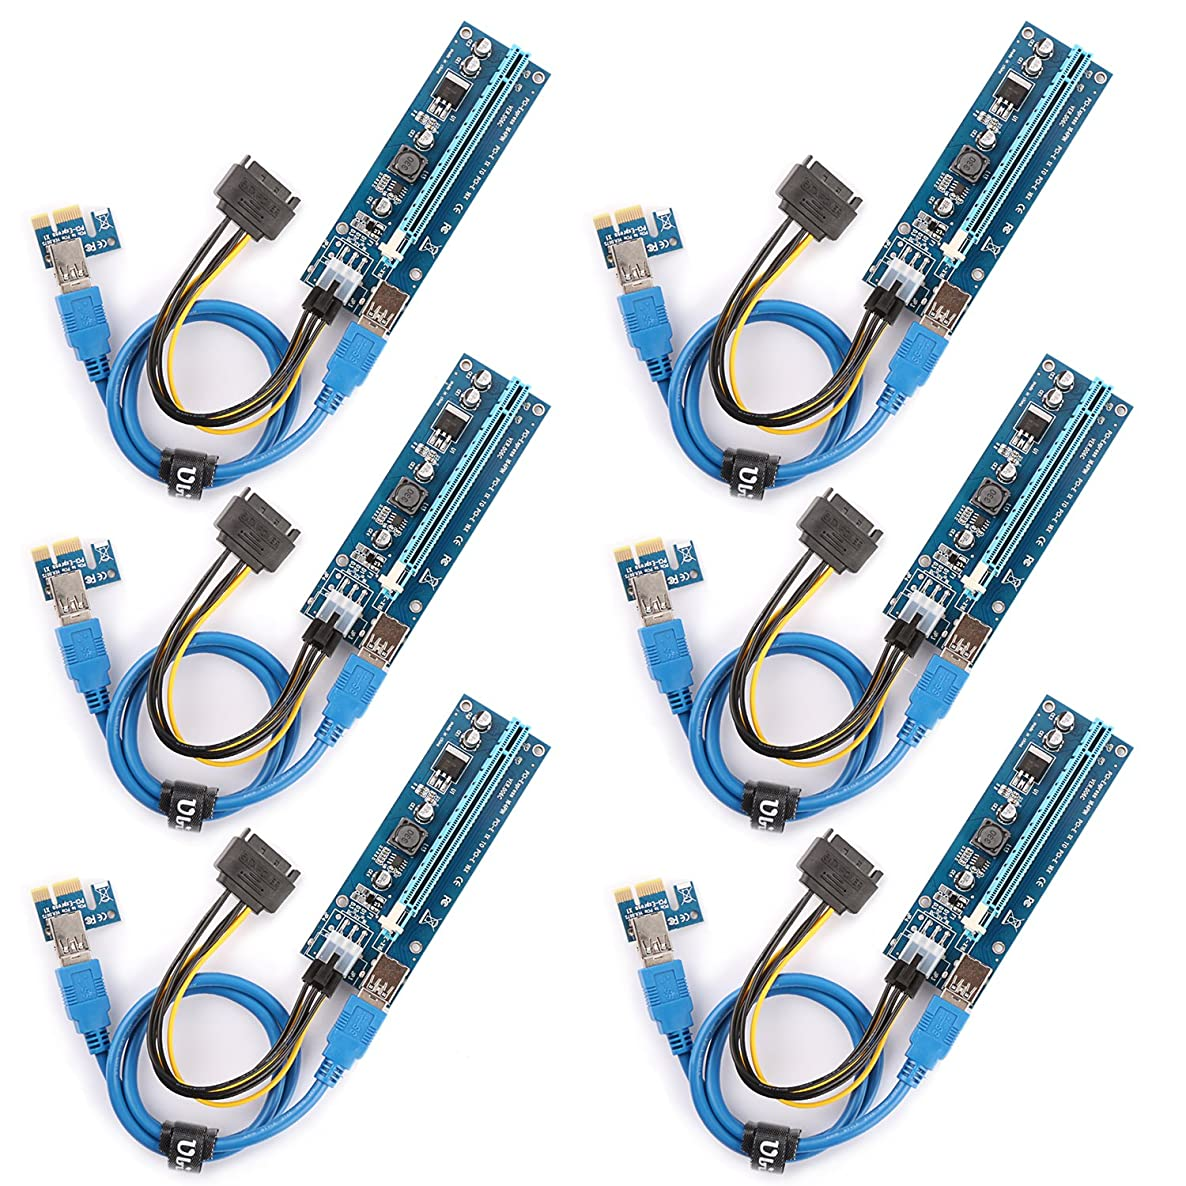 Ubit The 6 Pack PCI-E Riser for Bitcoin\Litecoin\ ETH Coin Mining Dedicated Graphics Card PCI-E Riser 1X to 16X Riser Card 164P / 60cm USB 3.0 Extension Cable & MOLEX to SATA Power Cable (Ver006C)